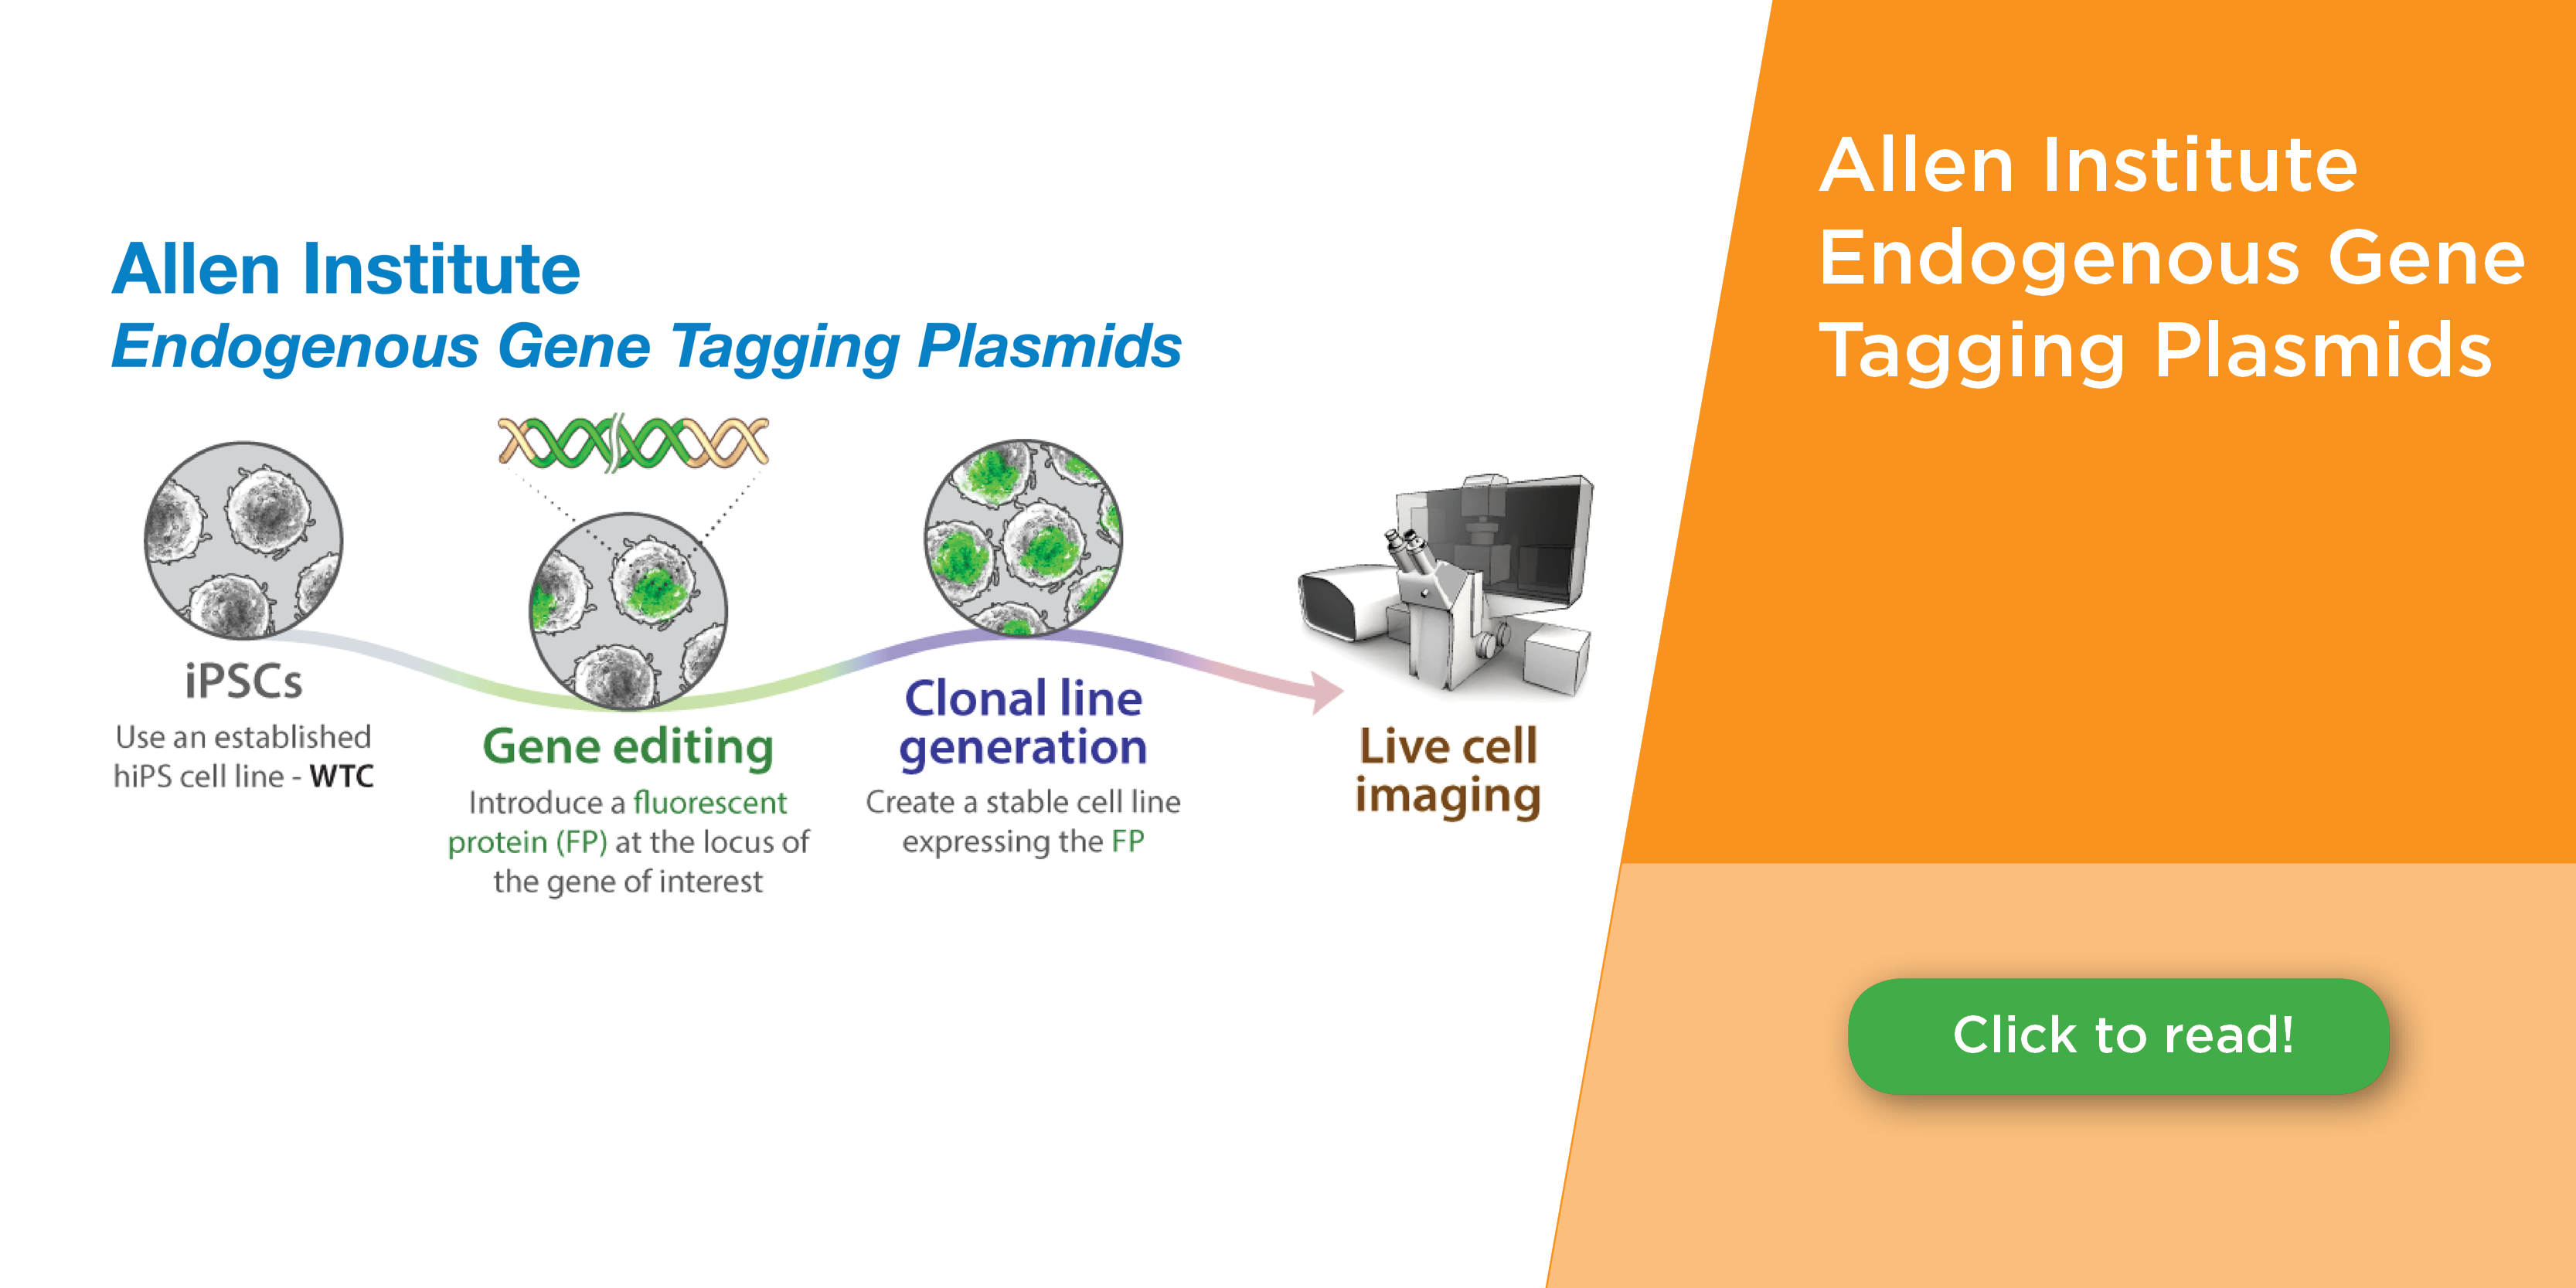 Allen Institute Endogenous Gene Tagging Plasmids